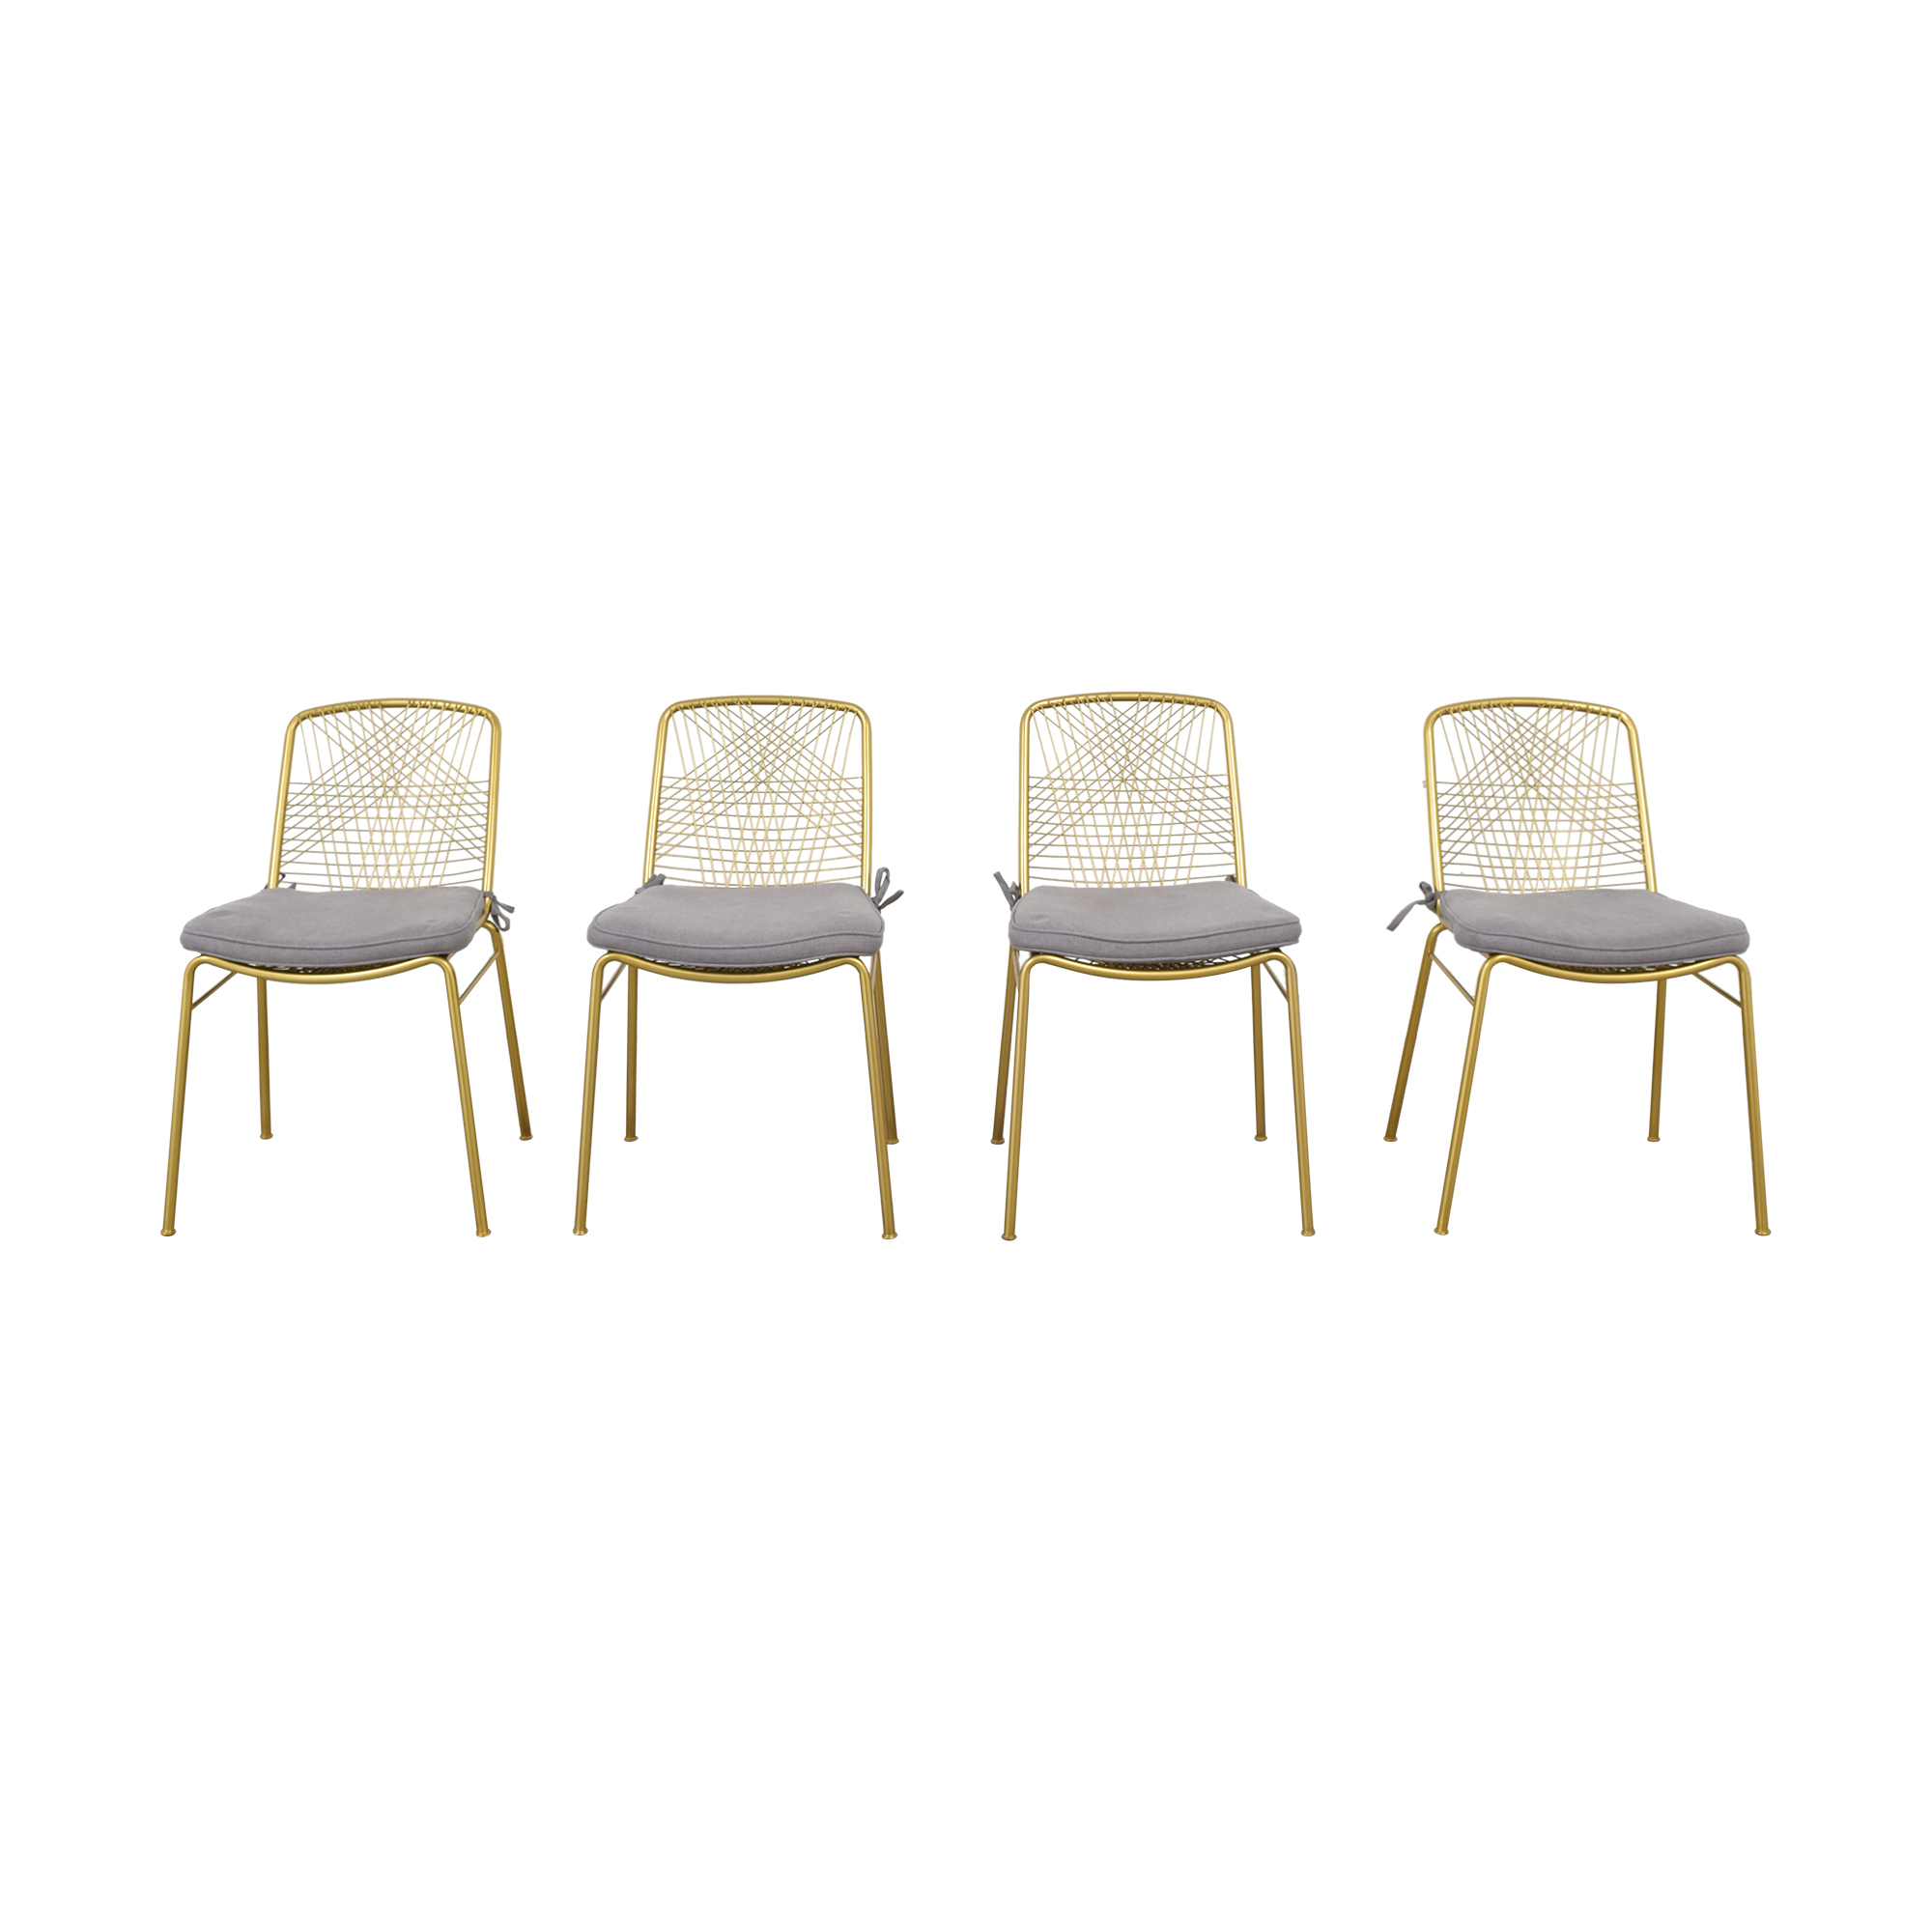 CB2 CB2 Alpha Brass Dining Chairs with Pier 1 Cushions nyc